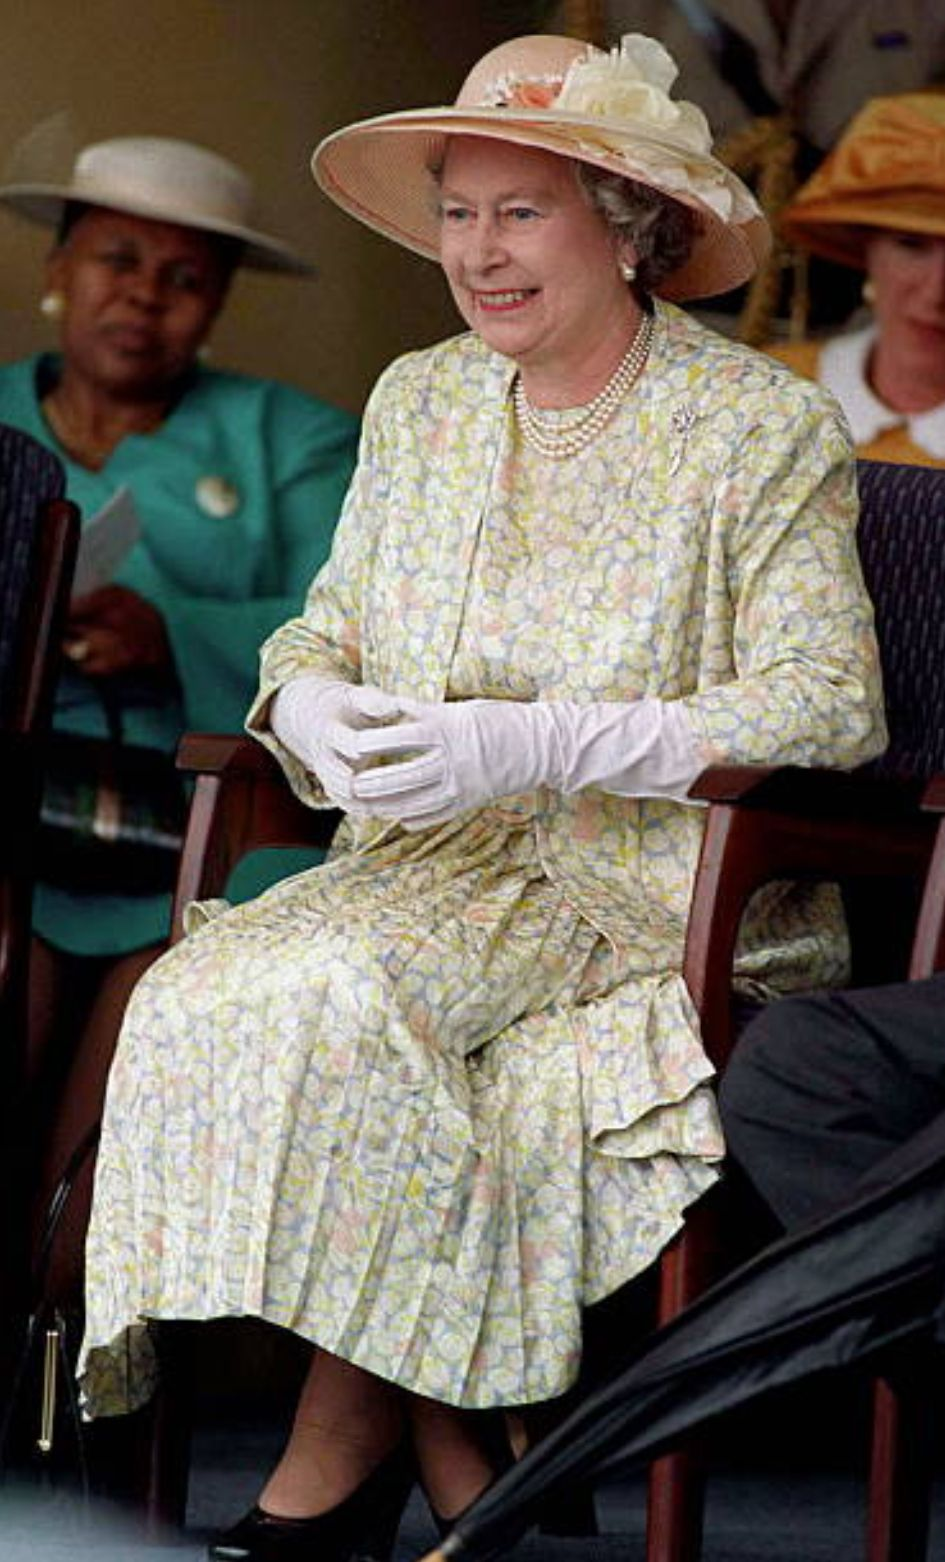 March 1995 Queen Prince Philip Chatting Together During A Visit To Vukuzakhe High School In Durban South Africa Queen Hat Queen Dress Her Majesty The Queen